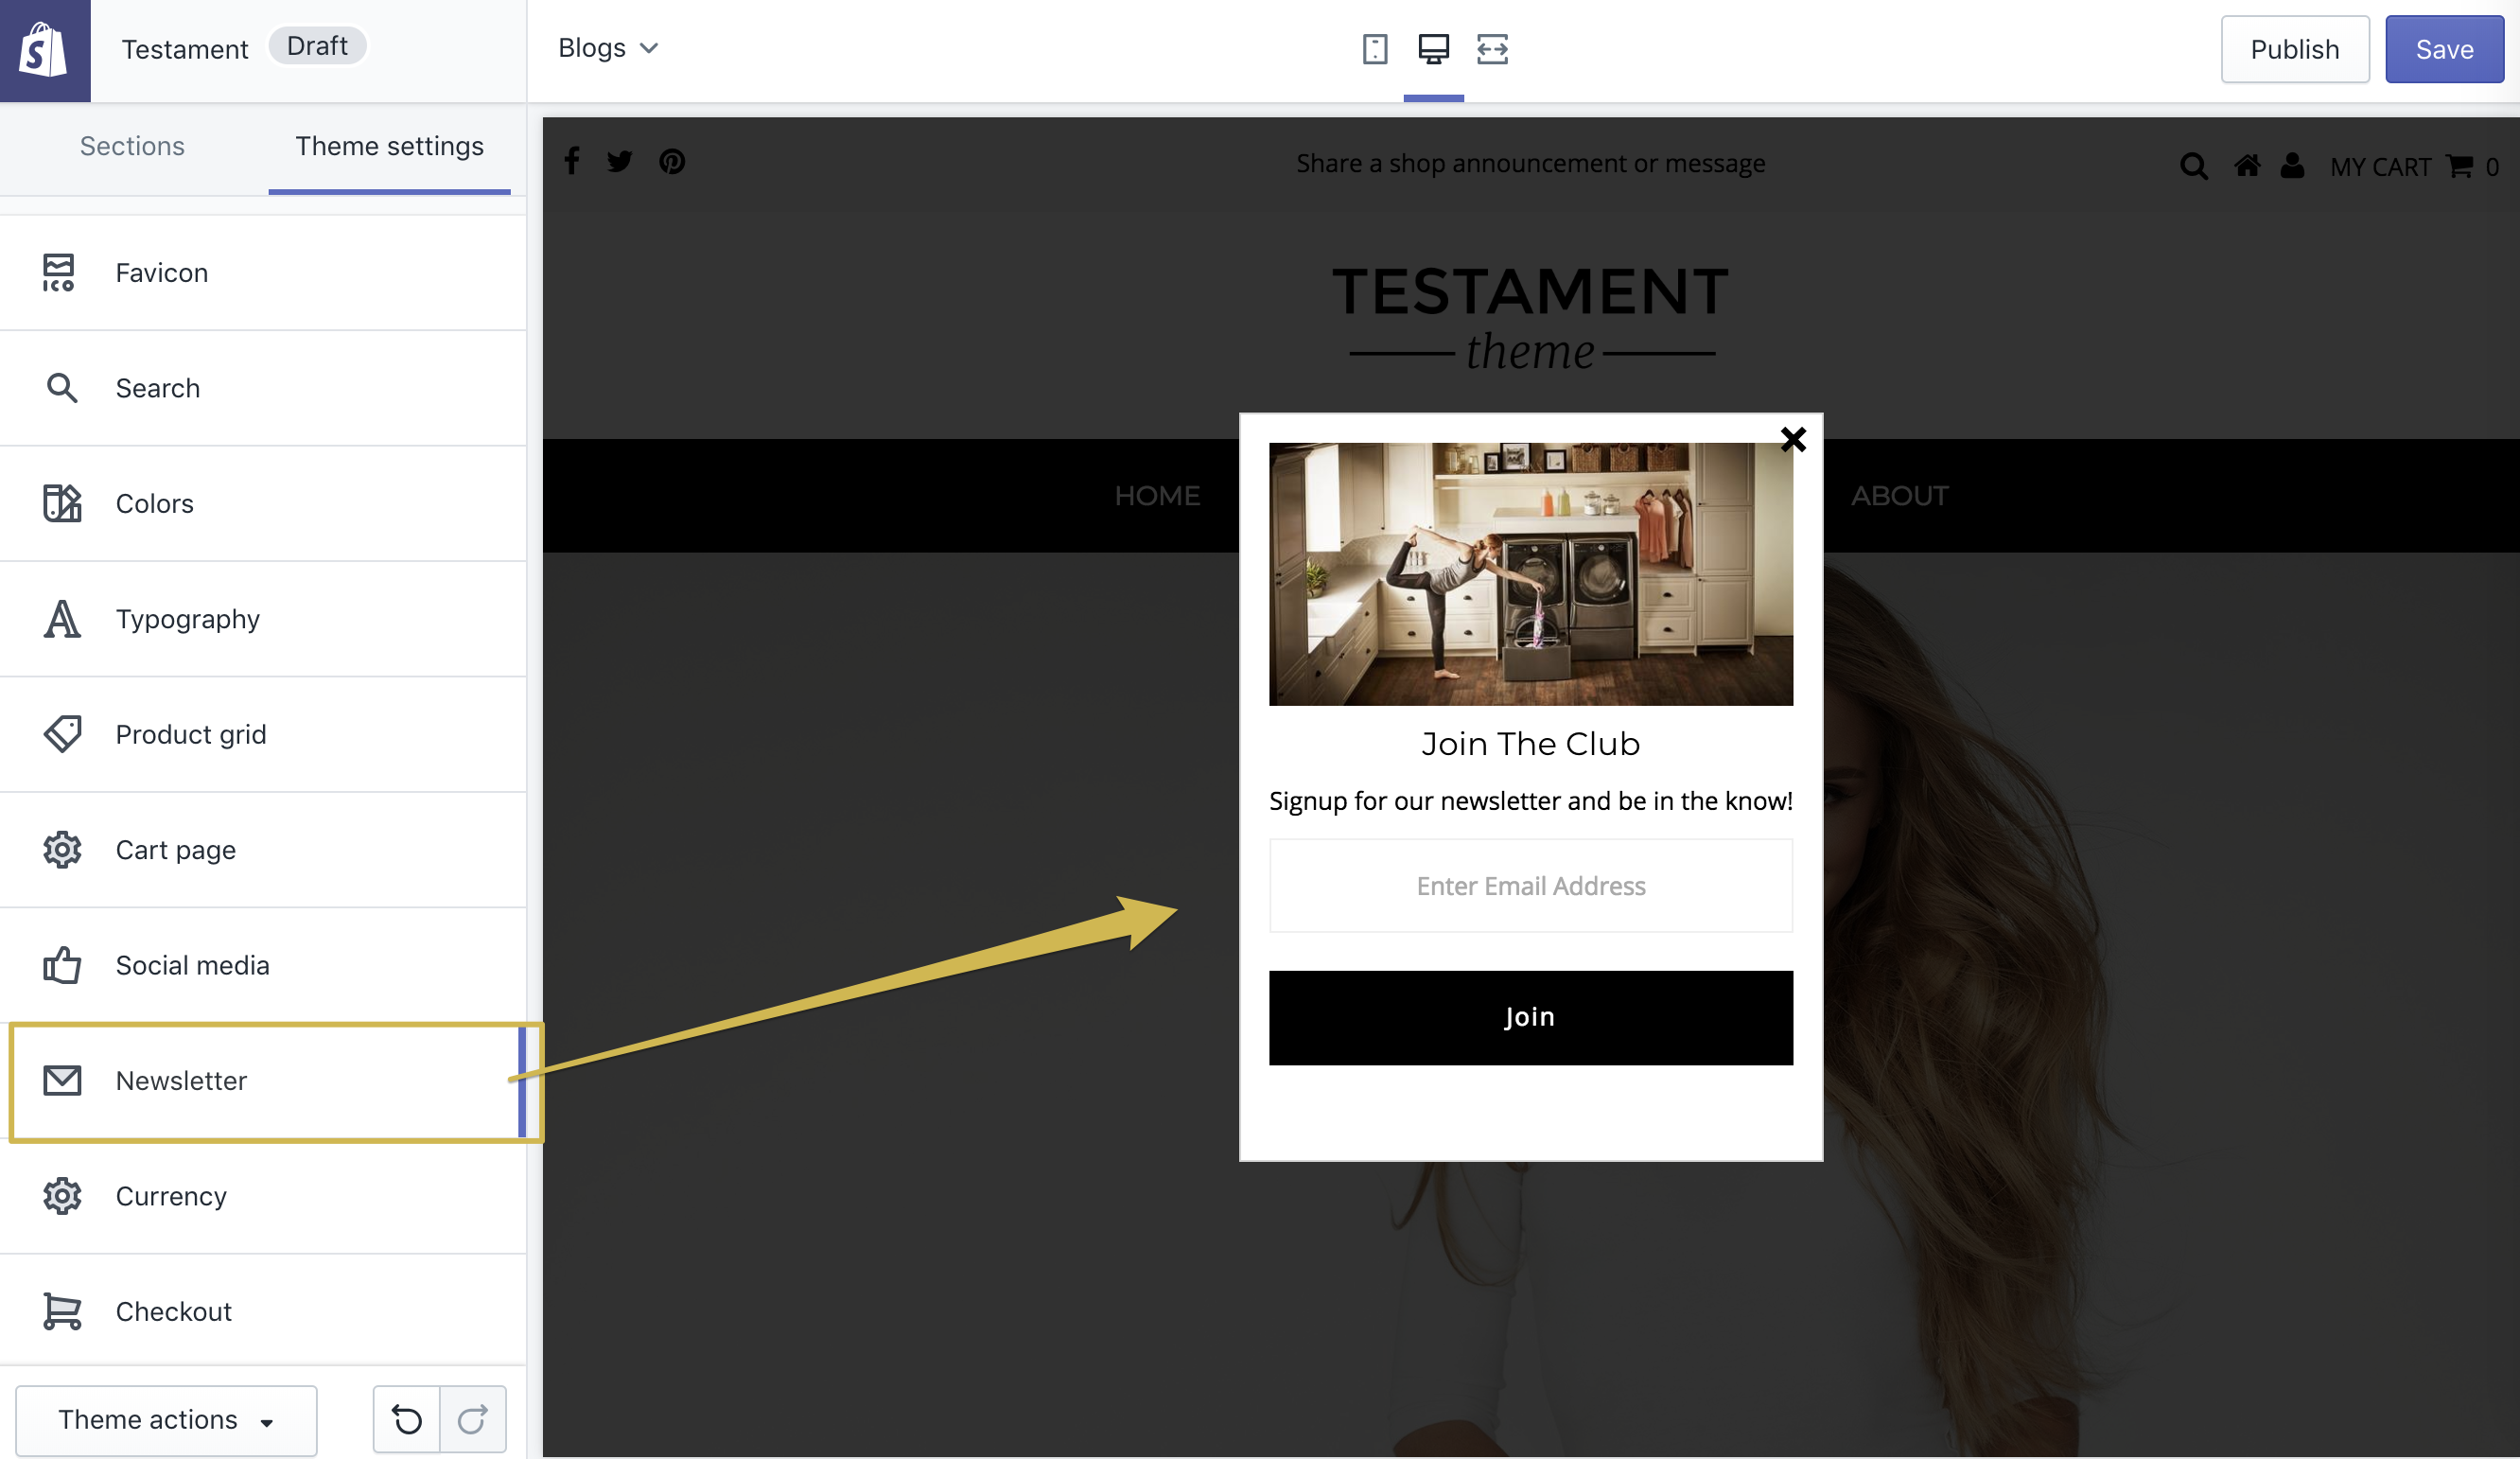 15  Testament Theme: Setting up the Newsletter Subscription